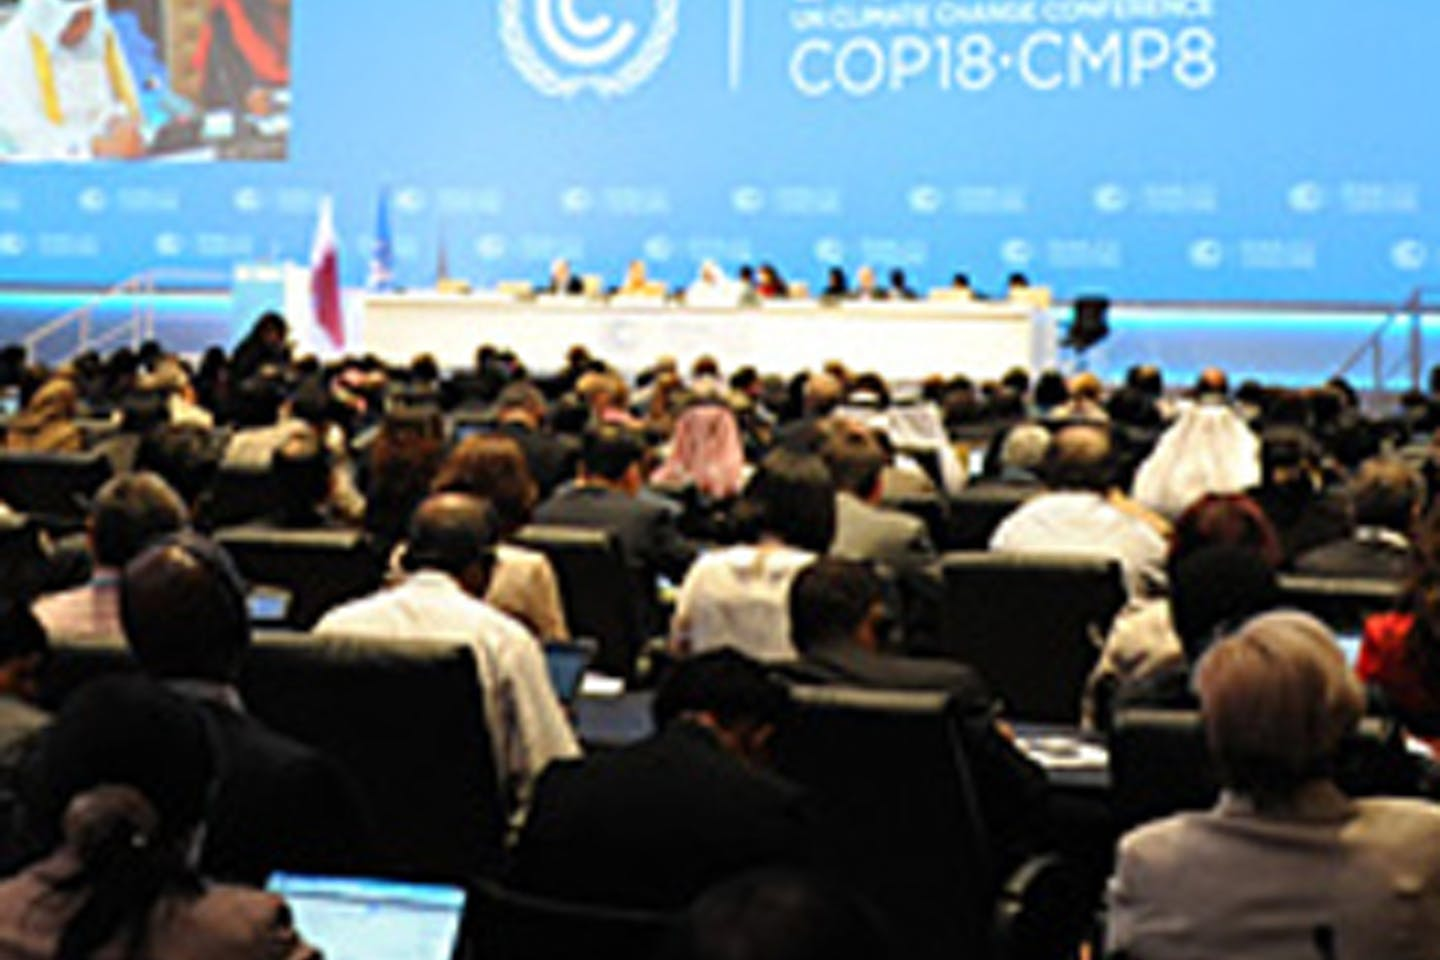 COP18 in Doha, Qatar